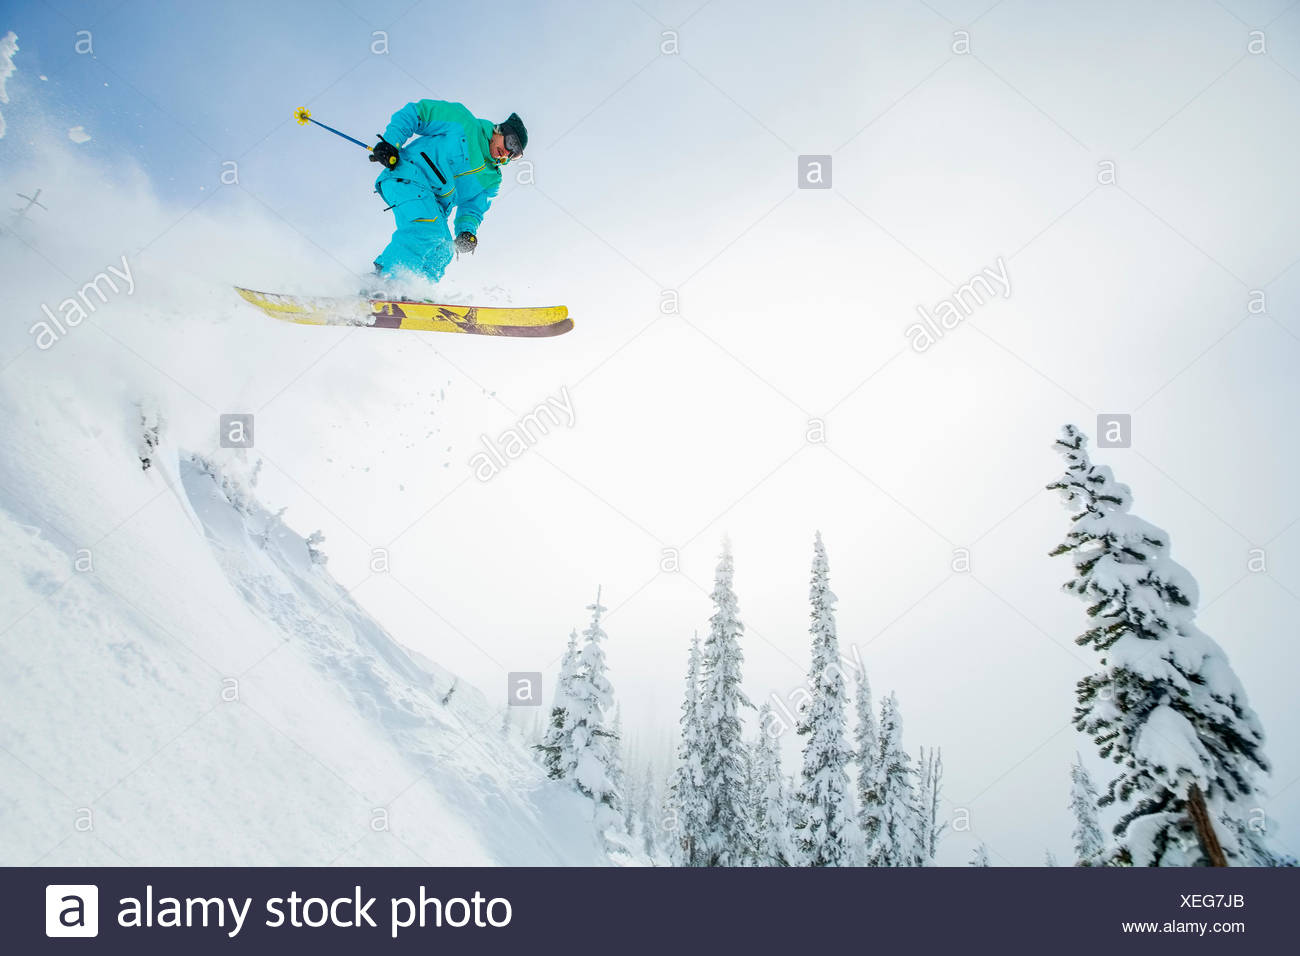 Young man jumping from ski slope - Stock Image